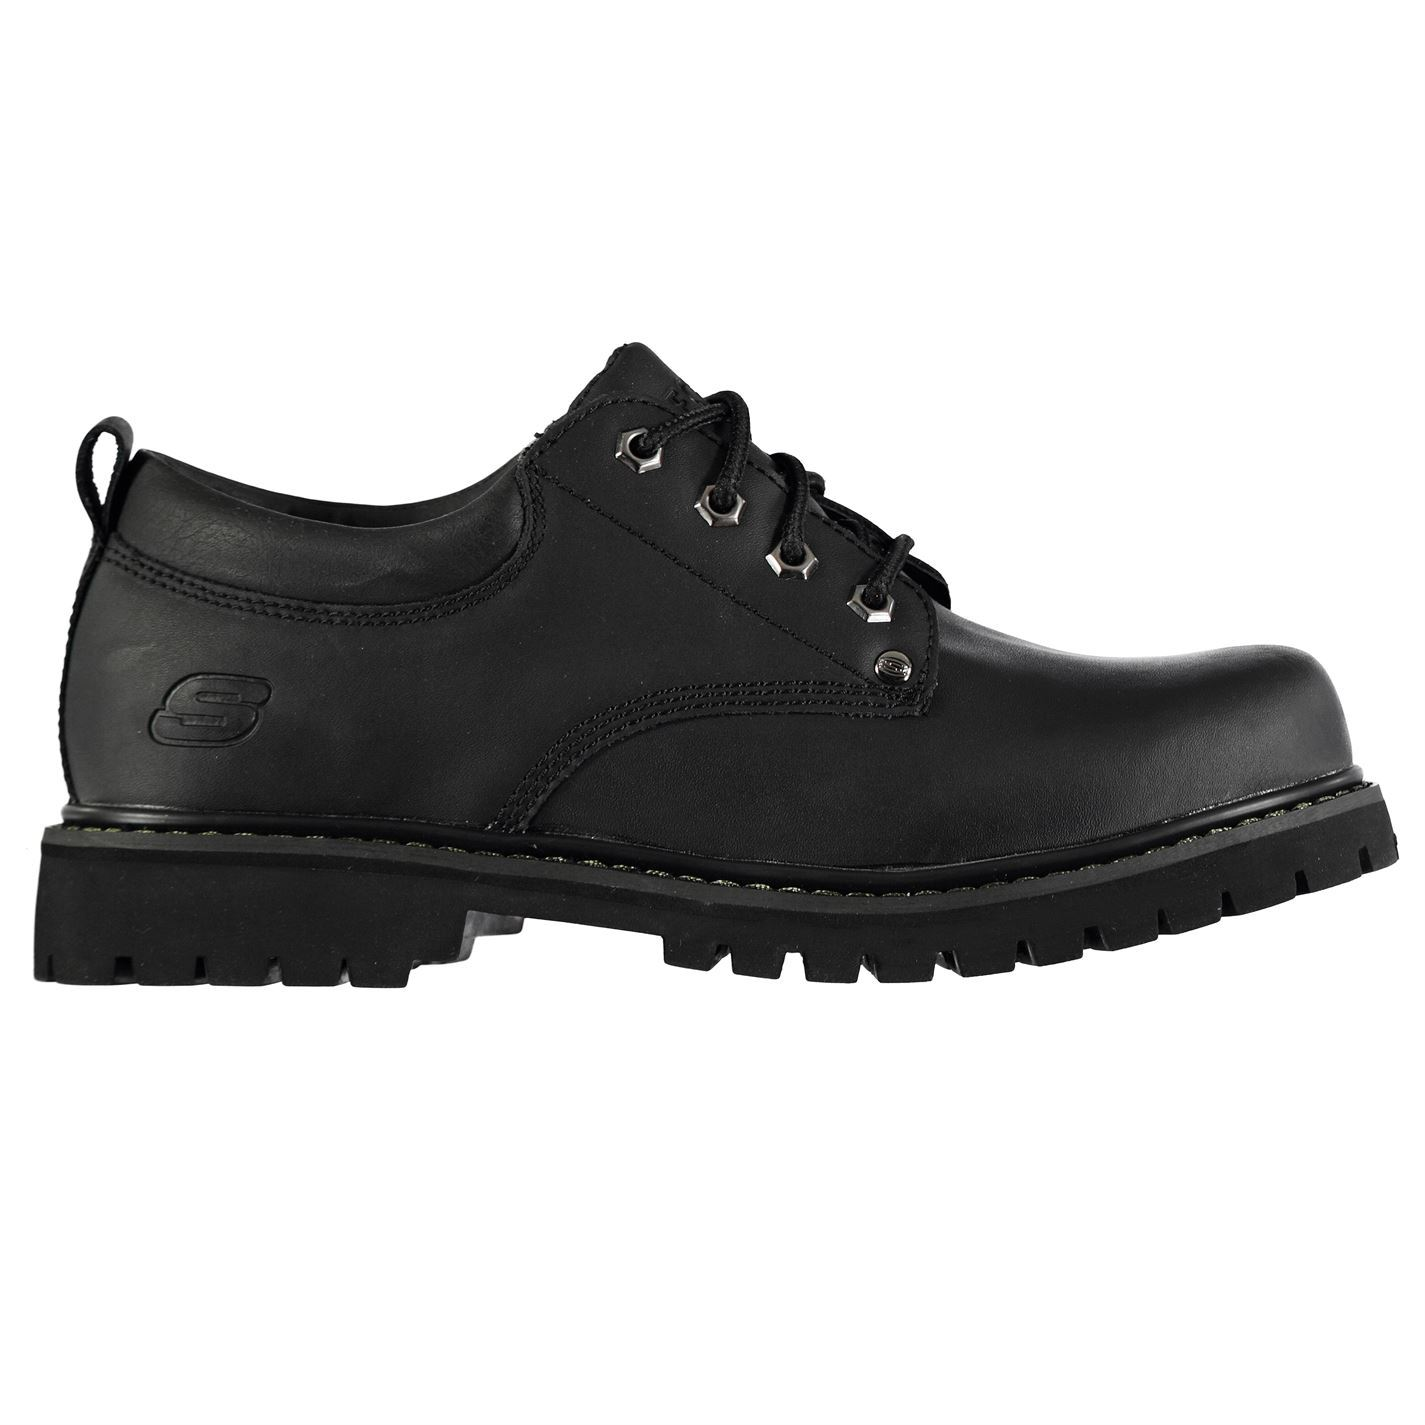 Skechers  Uomo Tom Cats Safety Leder Schuhes Casual Lace Up Leder Safety Upper Comfortable Fit a9d98b